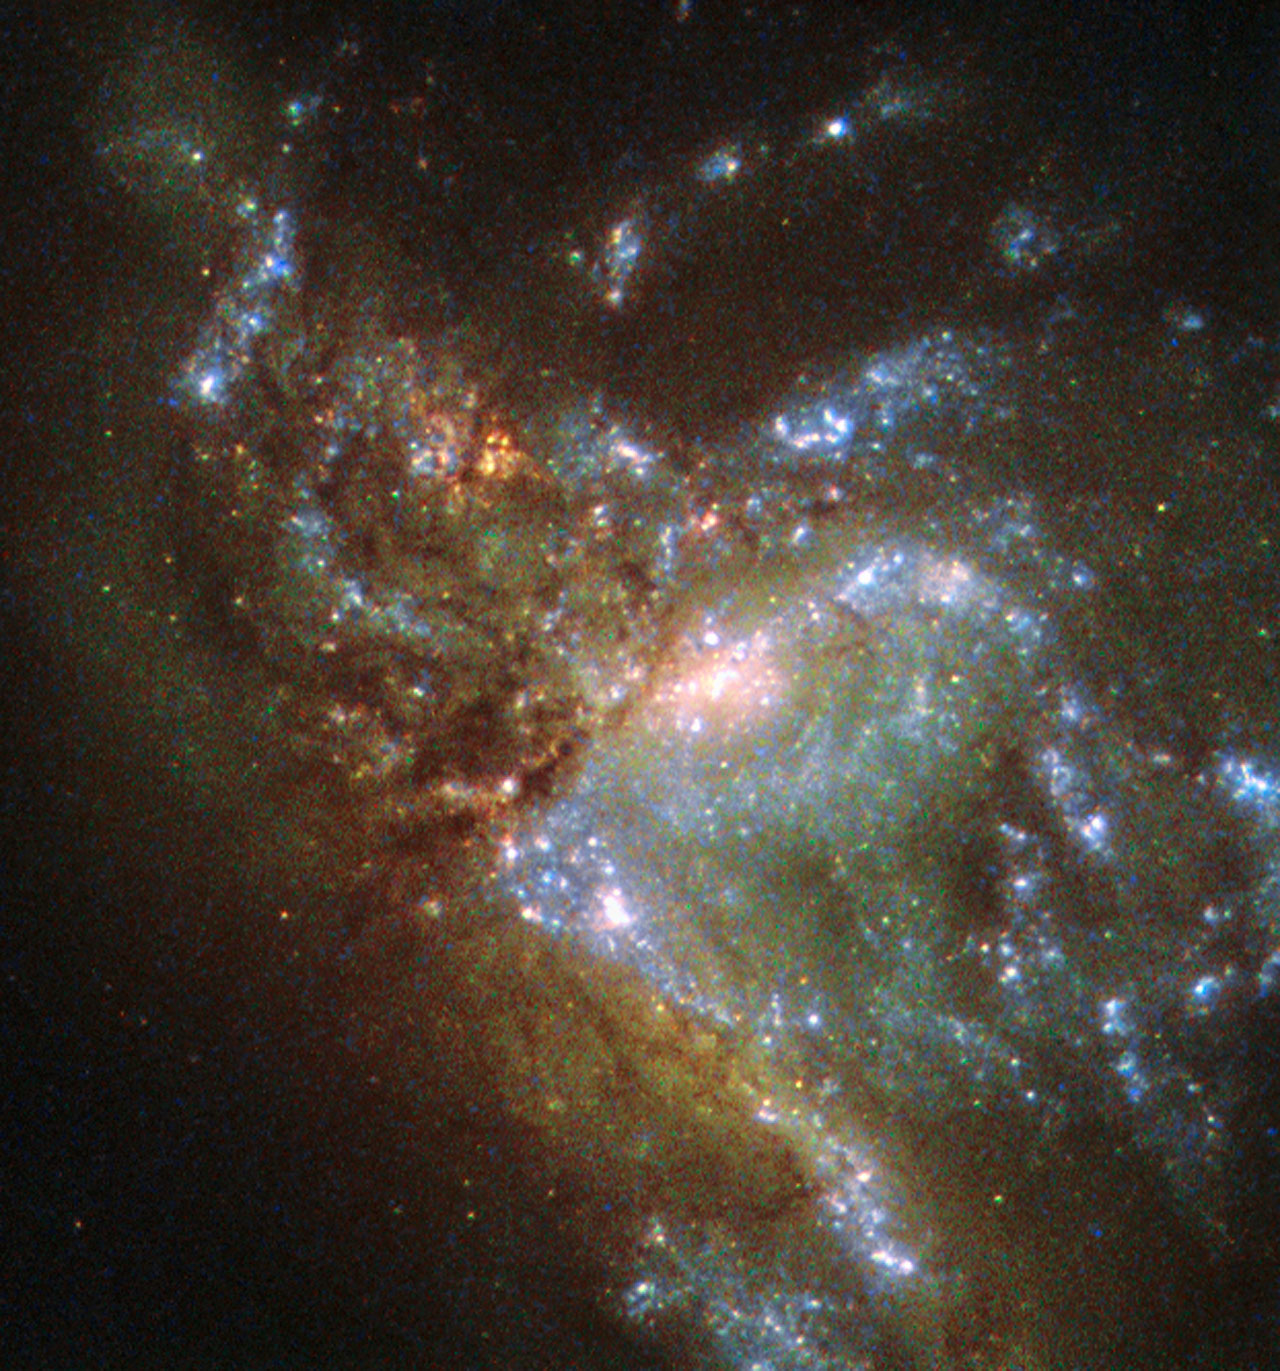 Image: Hubble views two galaxies merging